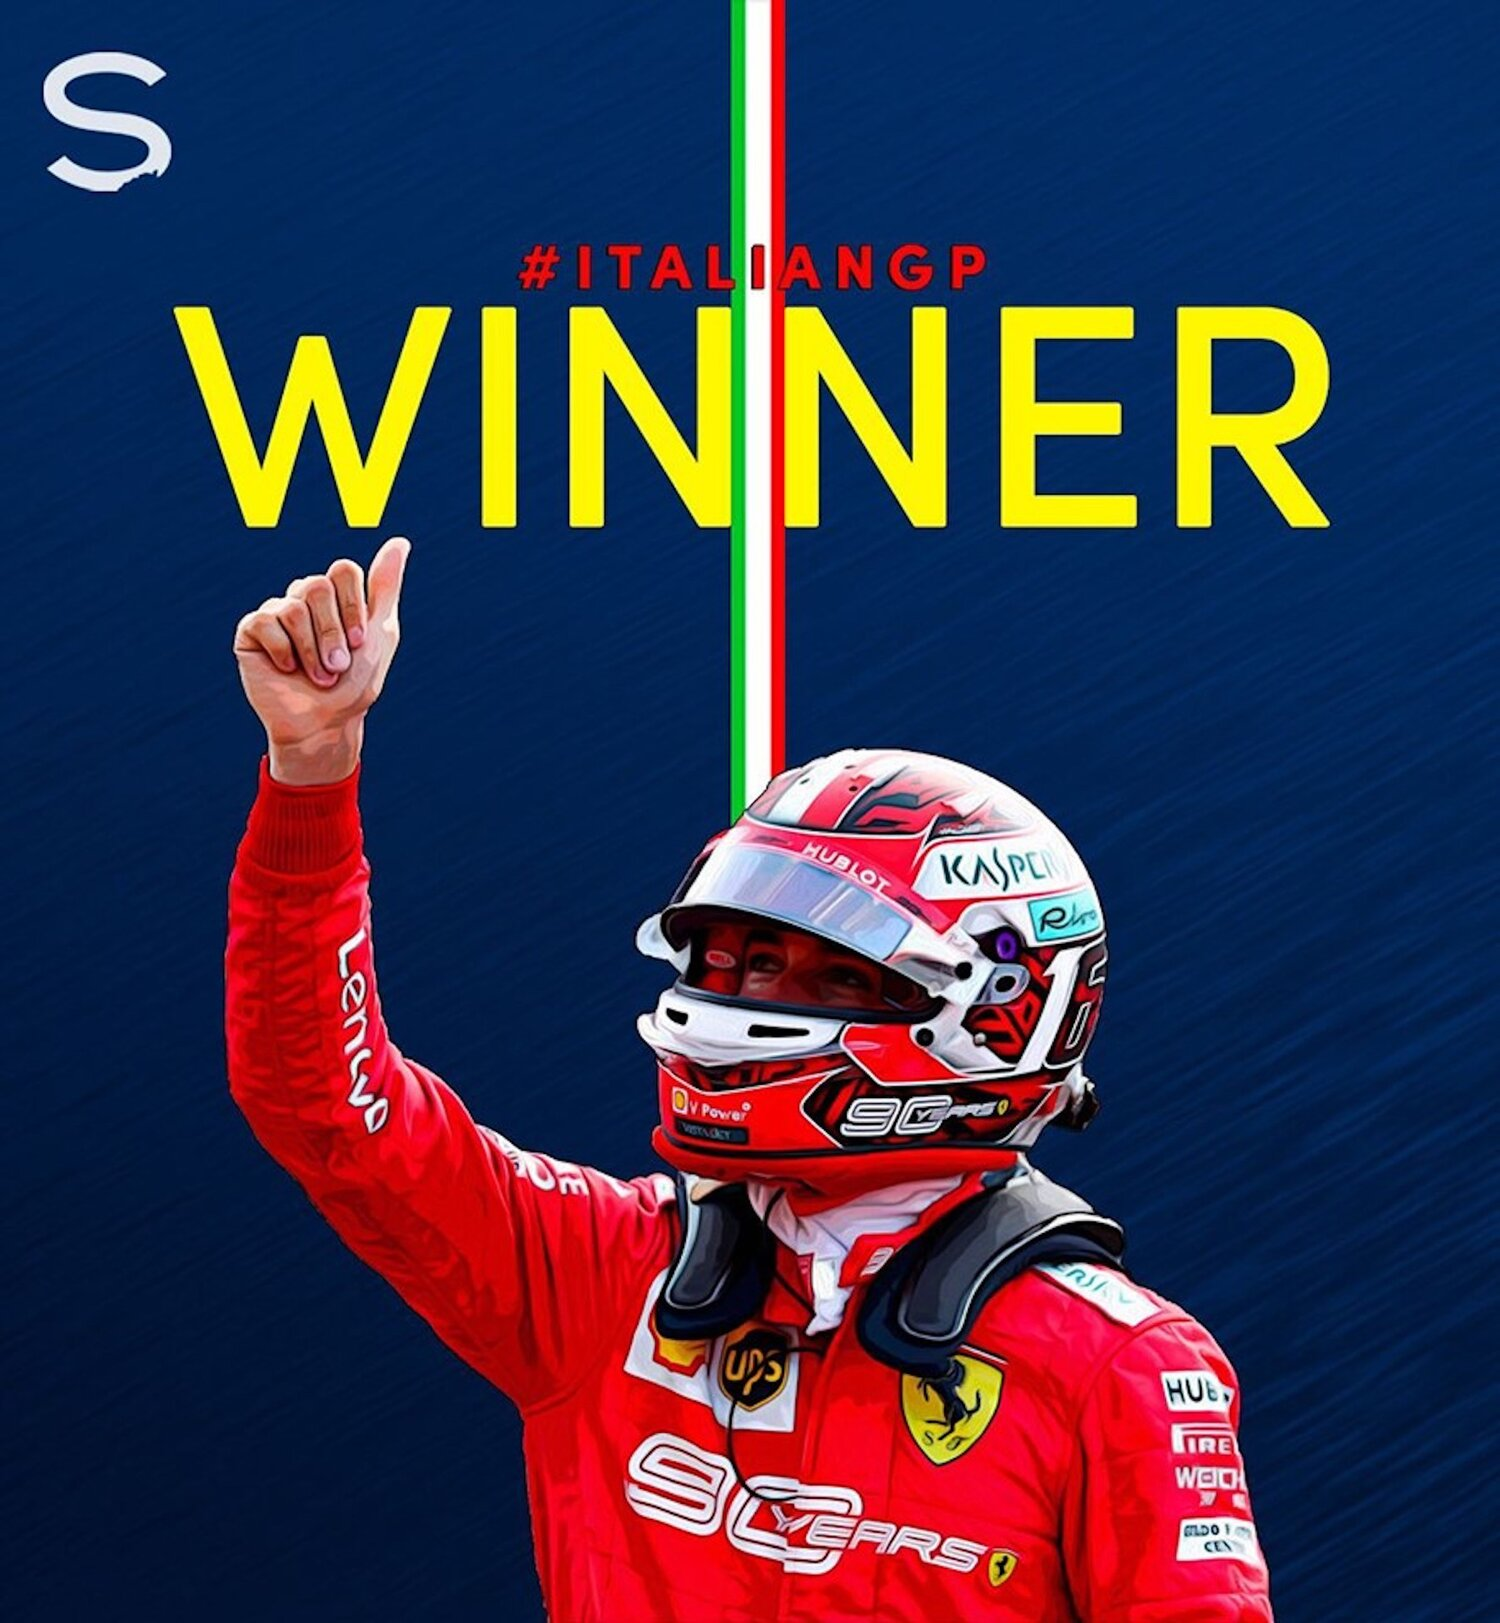 Charles Leclerc winner at Monza 2019